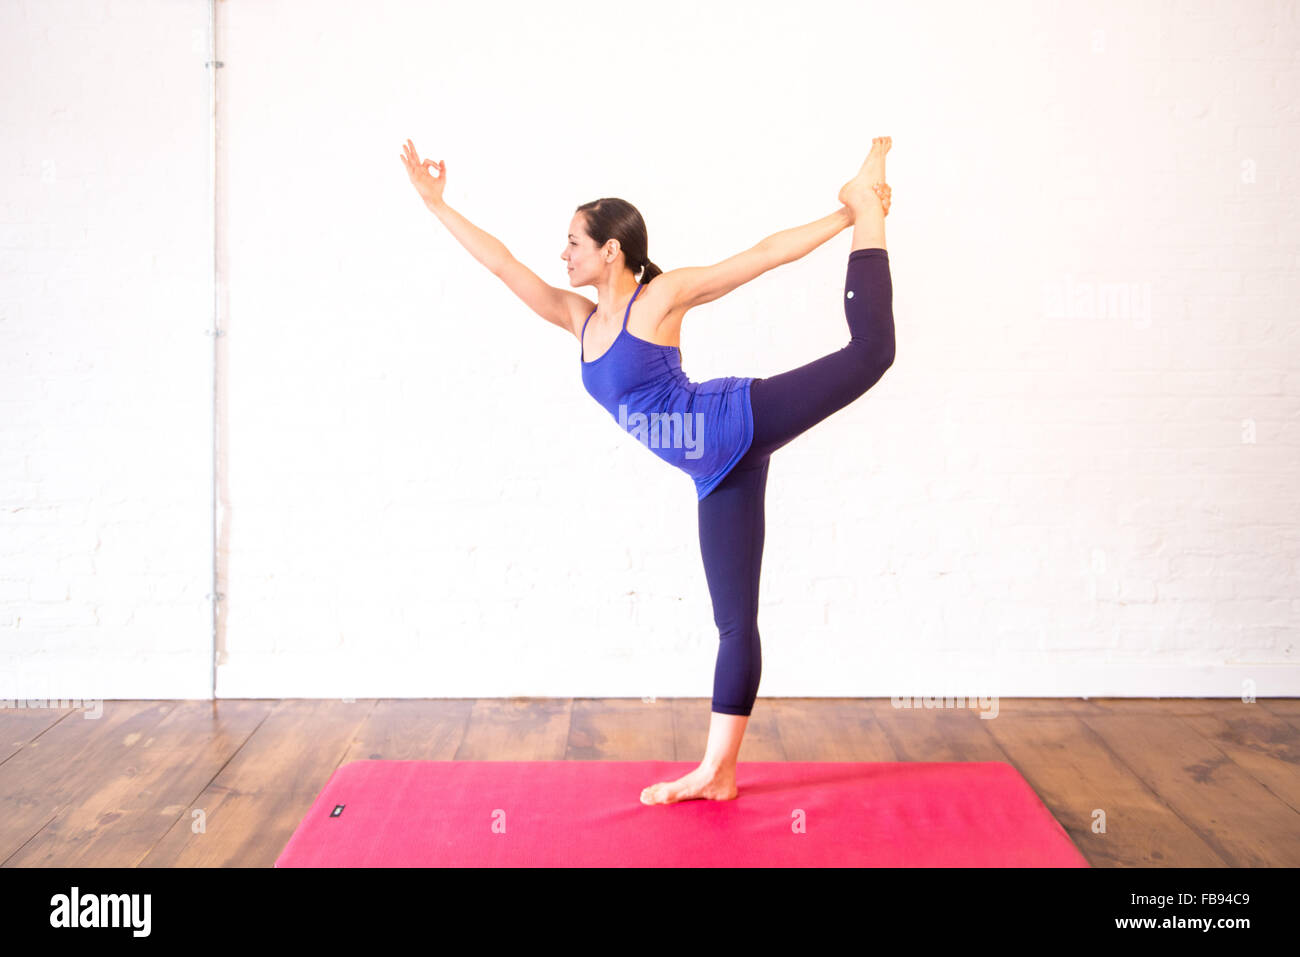 woman doing yoga pose on mat - Stock Image